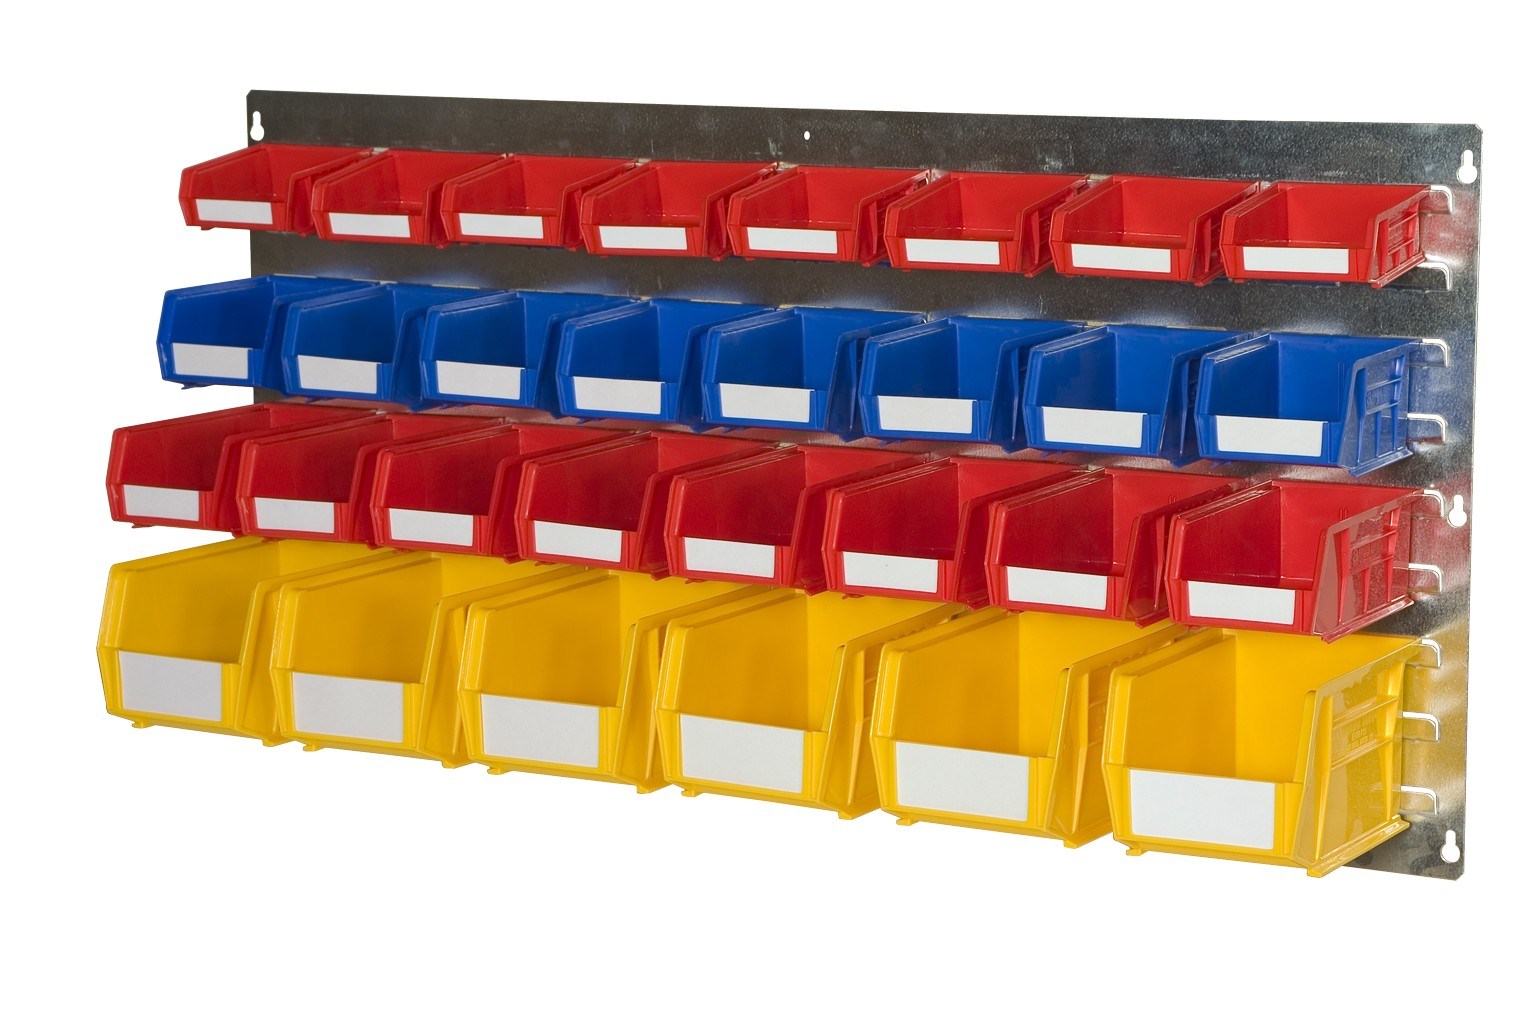 WALL LOUVRE PANELS WITH PLASTIC BINS (EL)